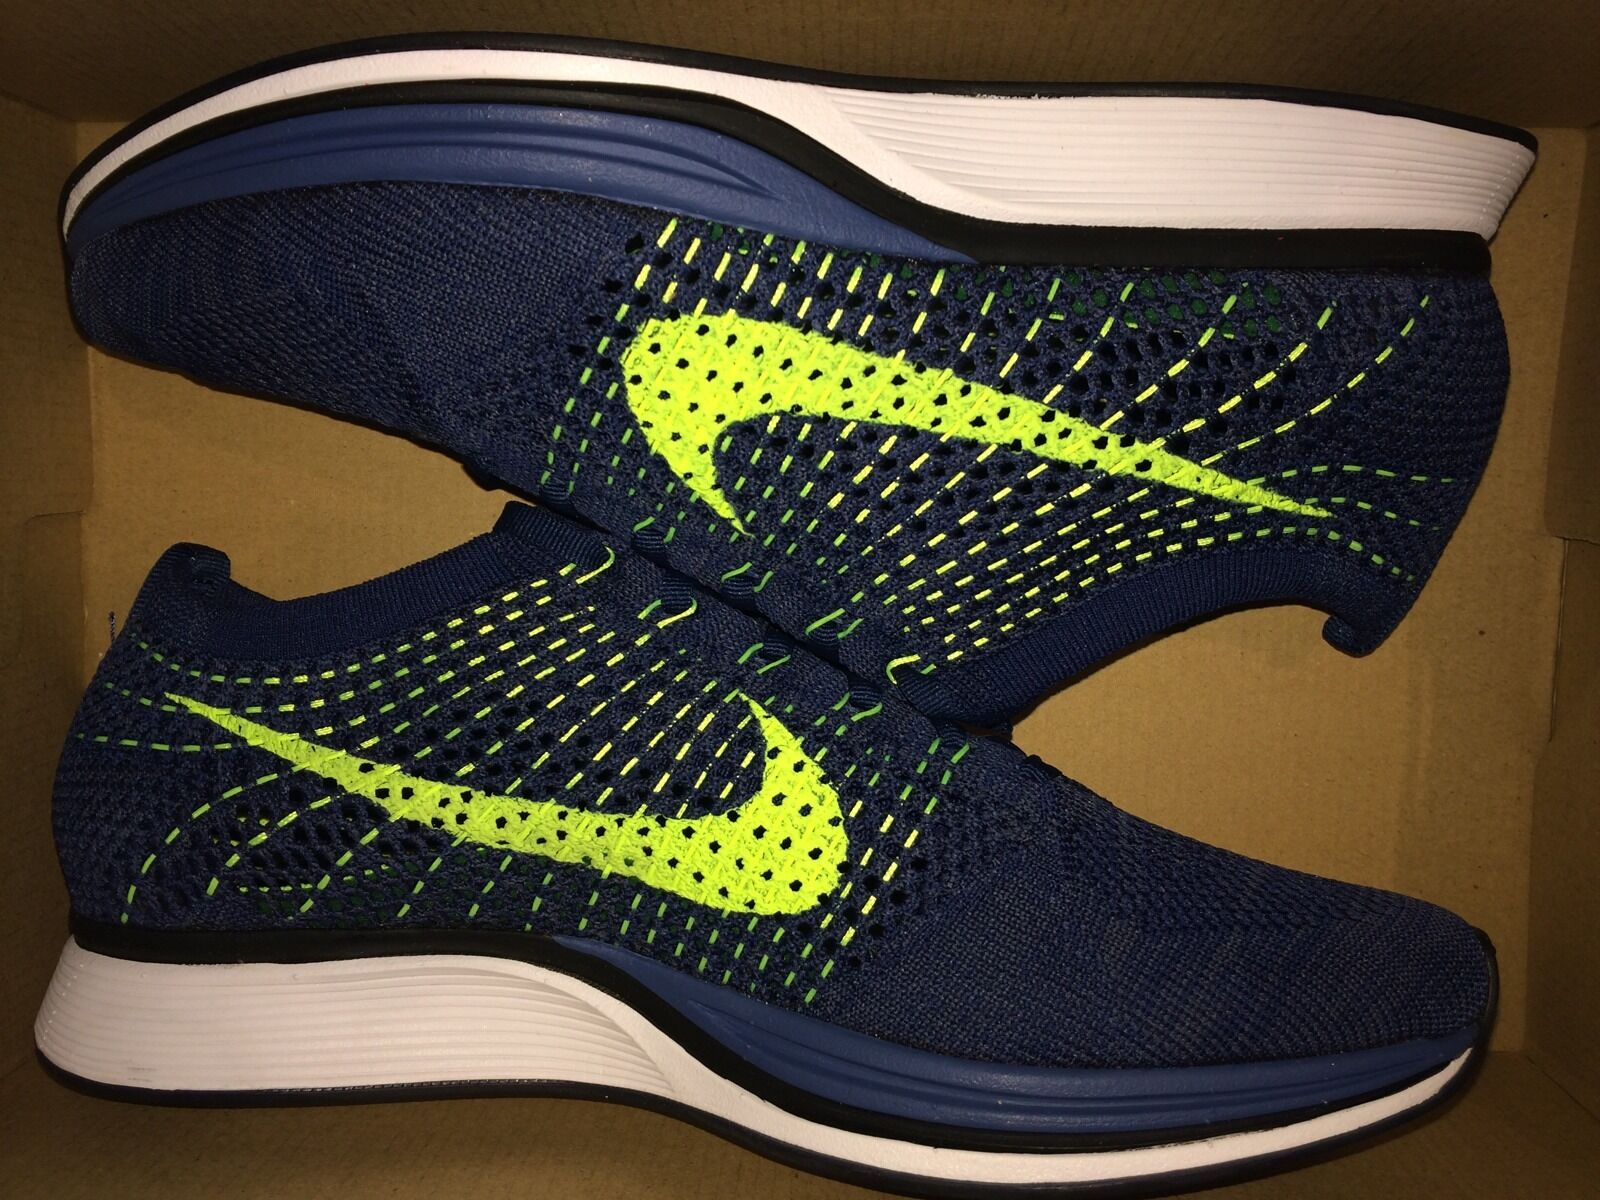 DS New Nike Flyknit Racer One 1 Brave bluee Squadron Volt US Mens Sz 8 526628 407